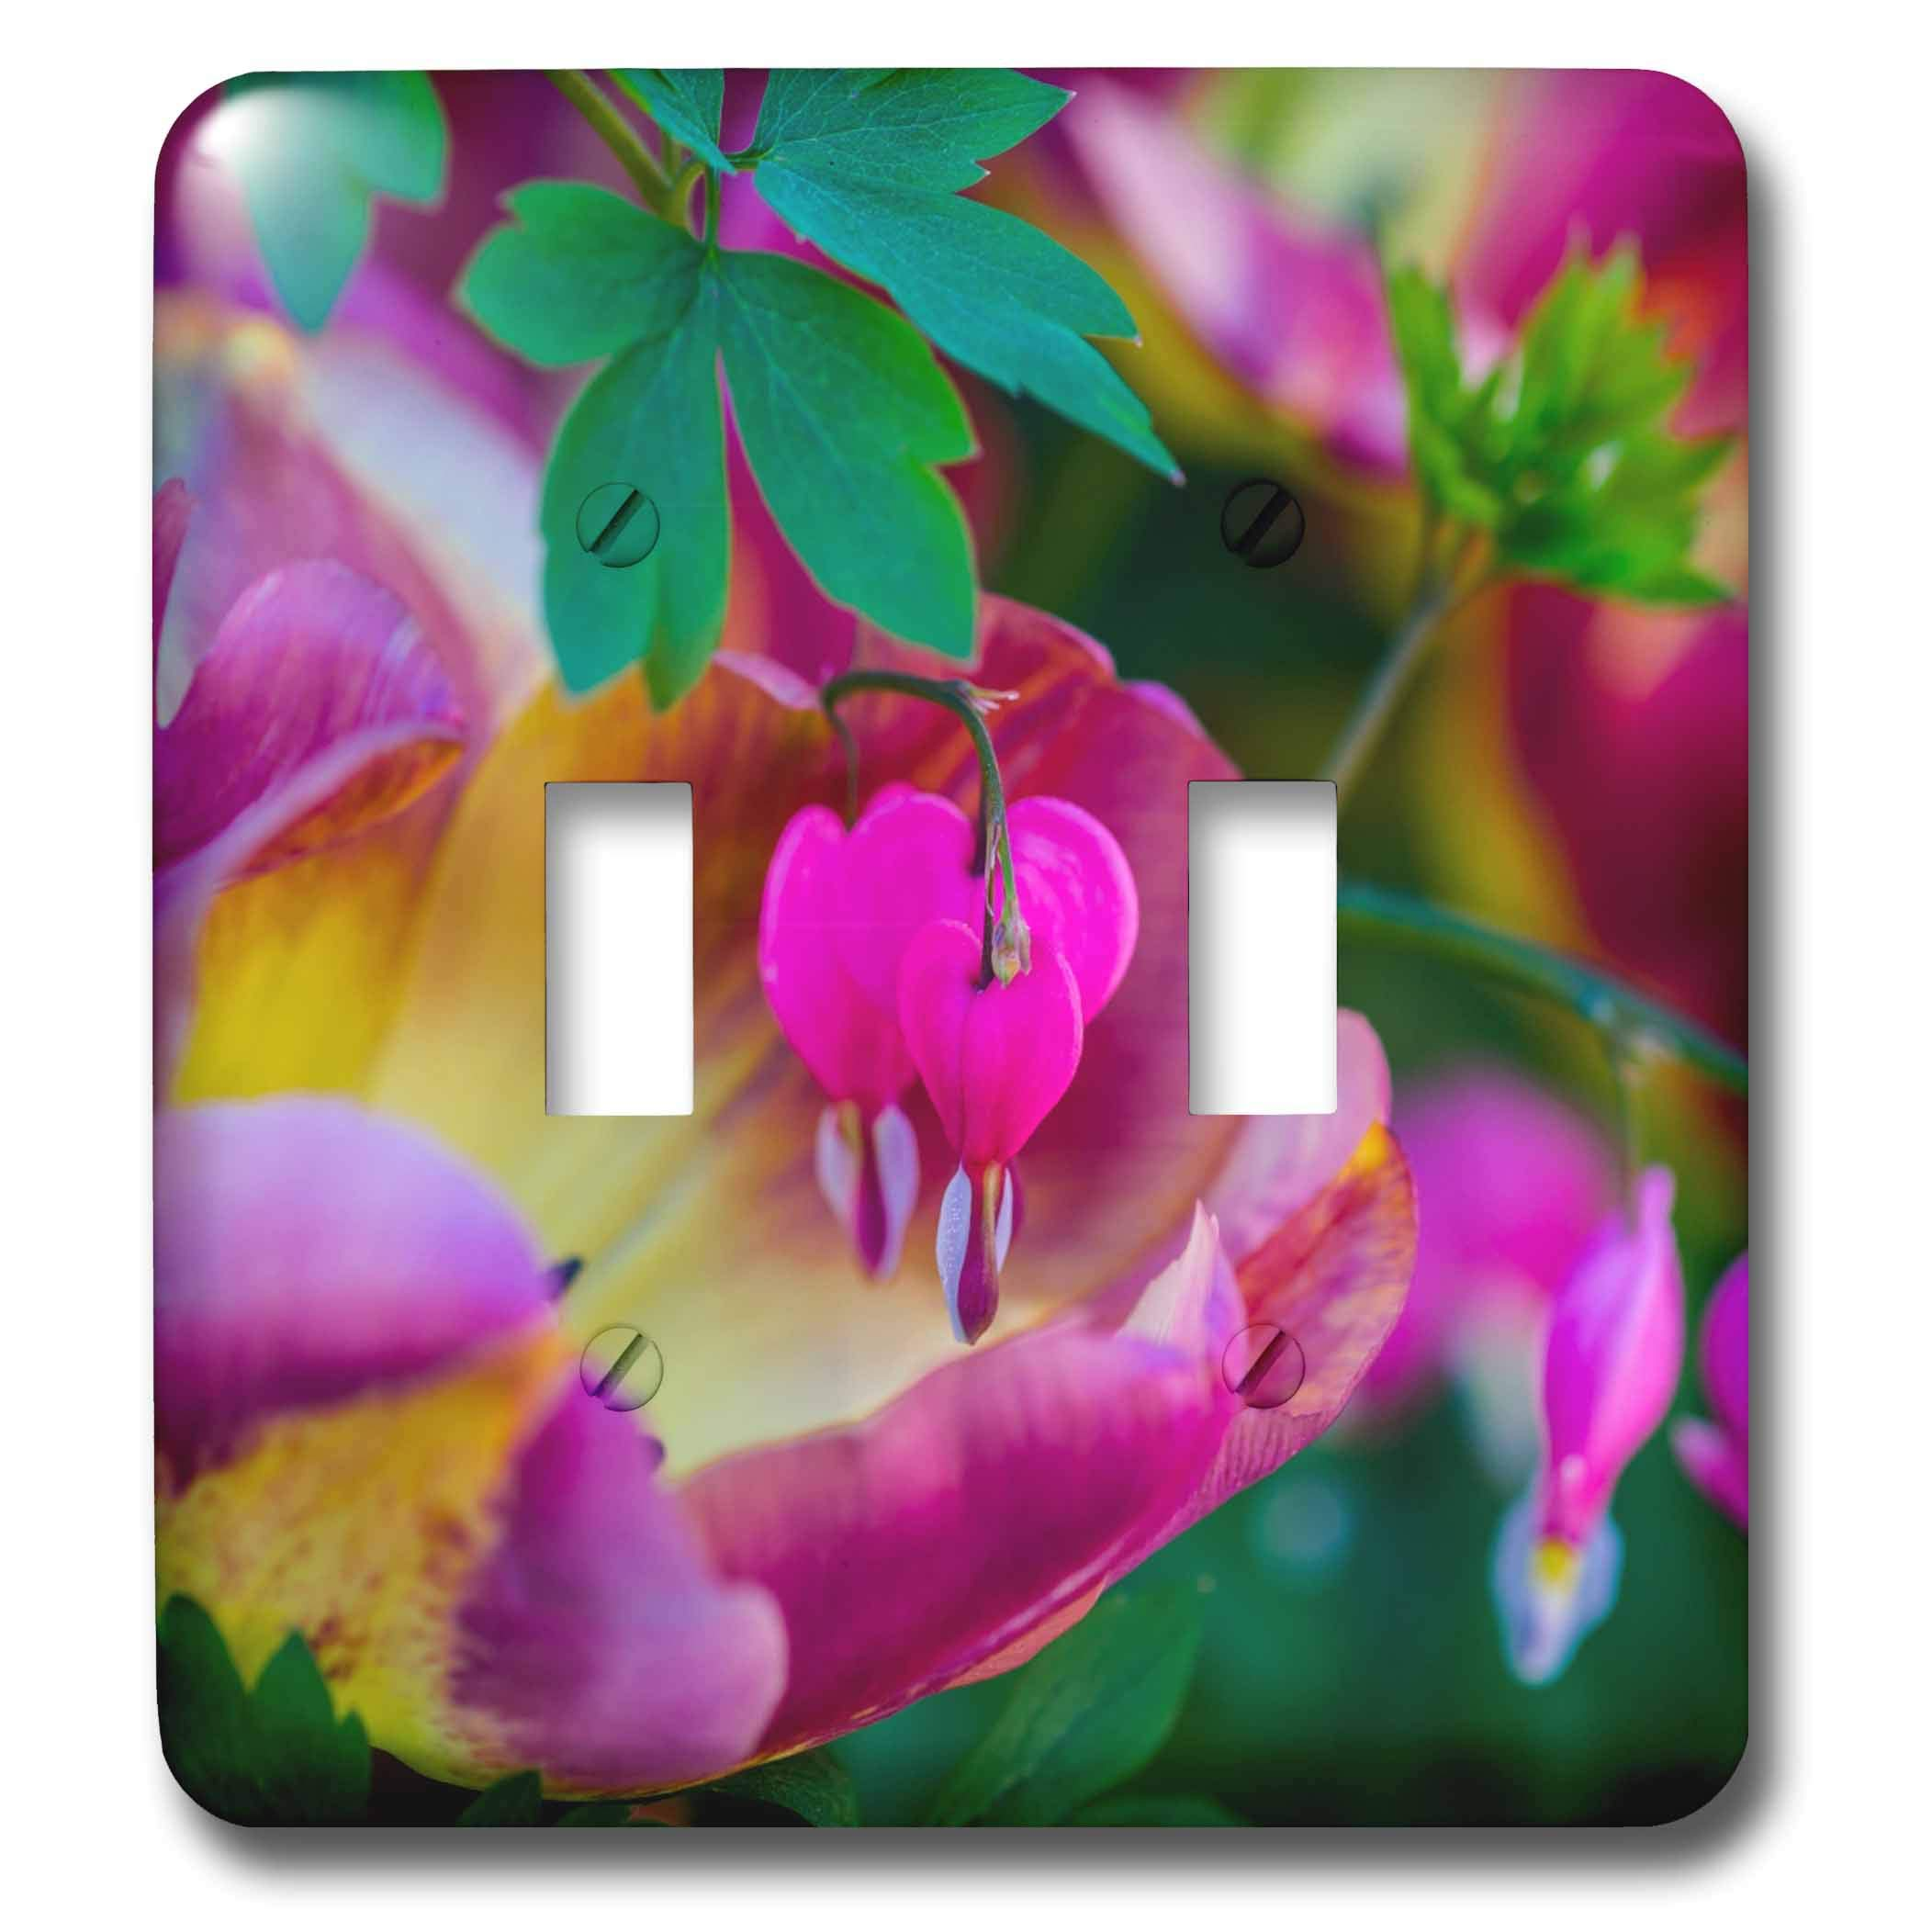 3dRose Alexis Photography - Flowers Bleeding Heart - Bleeding heart and tulip flowers. Colorful positive romantic scene - Light Switch Covers - double toggle switch (lsp_288820_2)